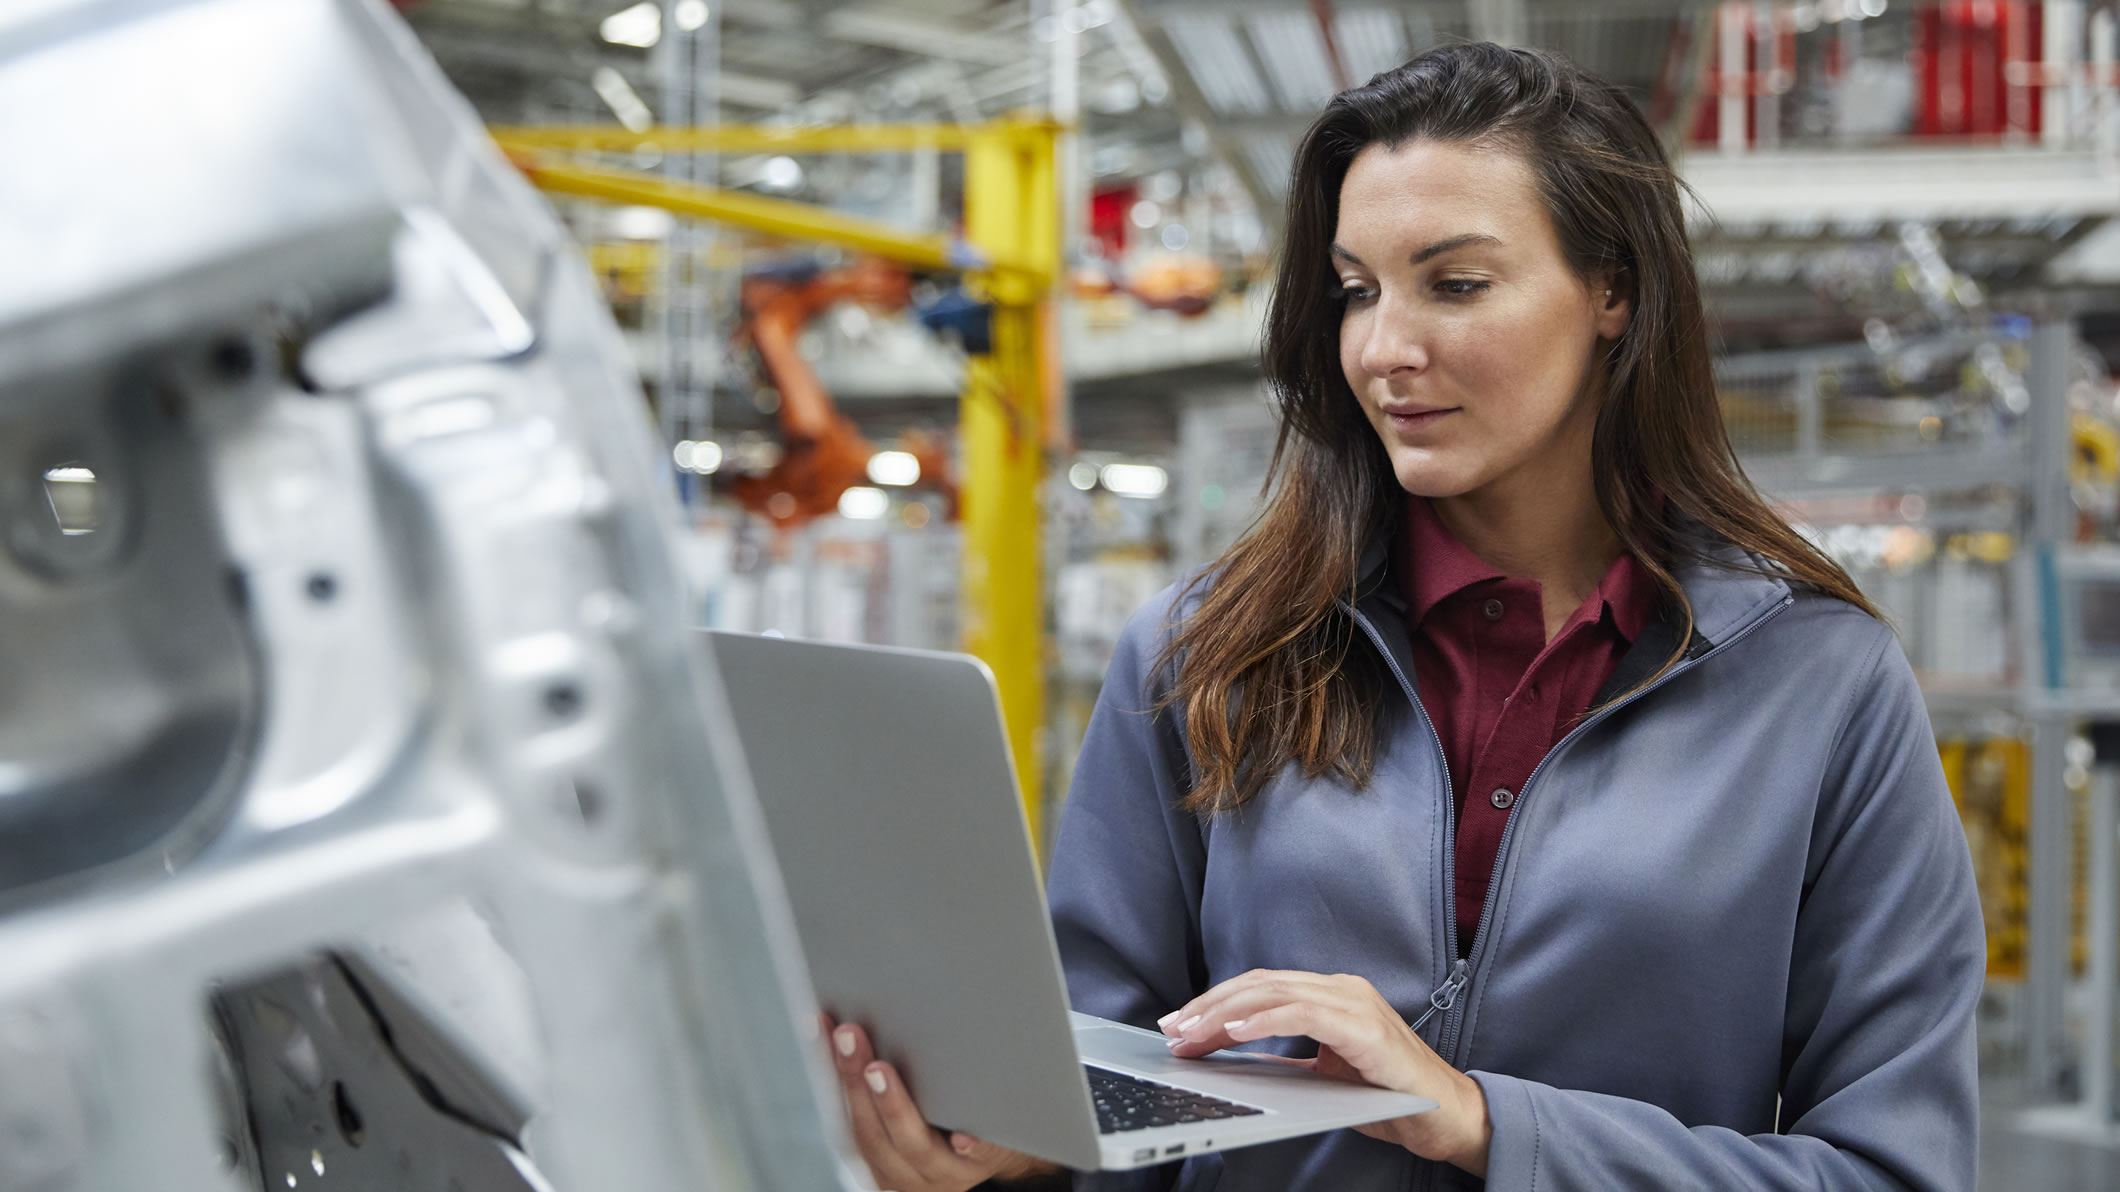 woman using laptop in factory setting